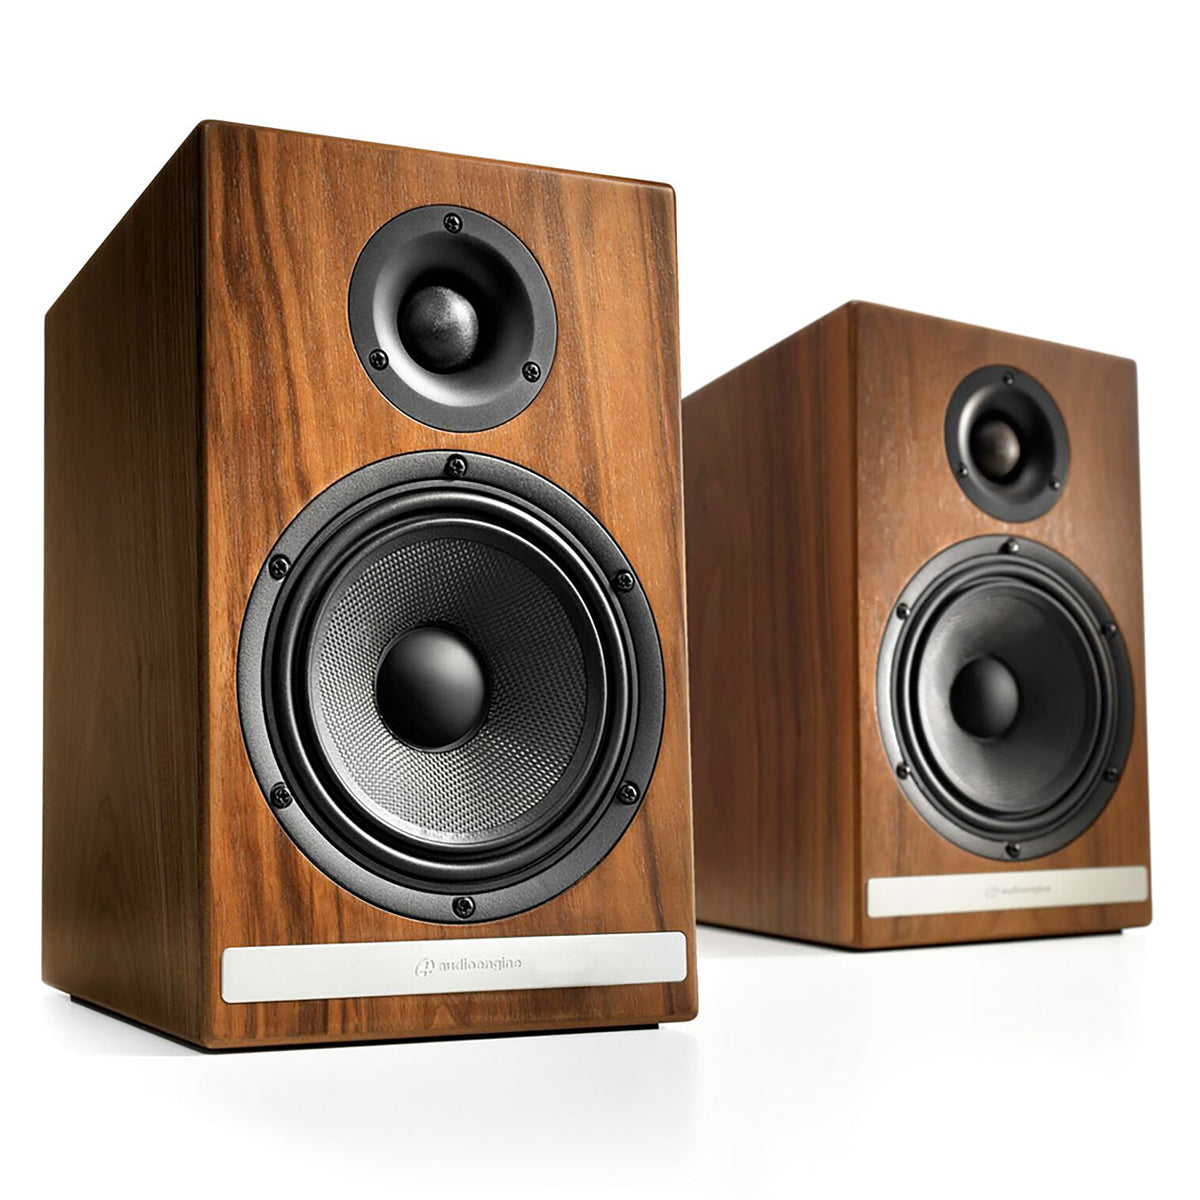 audioengine hdp6 passive speakers walnut. Black Bedroom Furniture Sets. Home Design Ideas